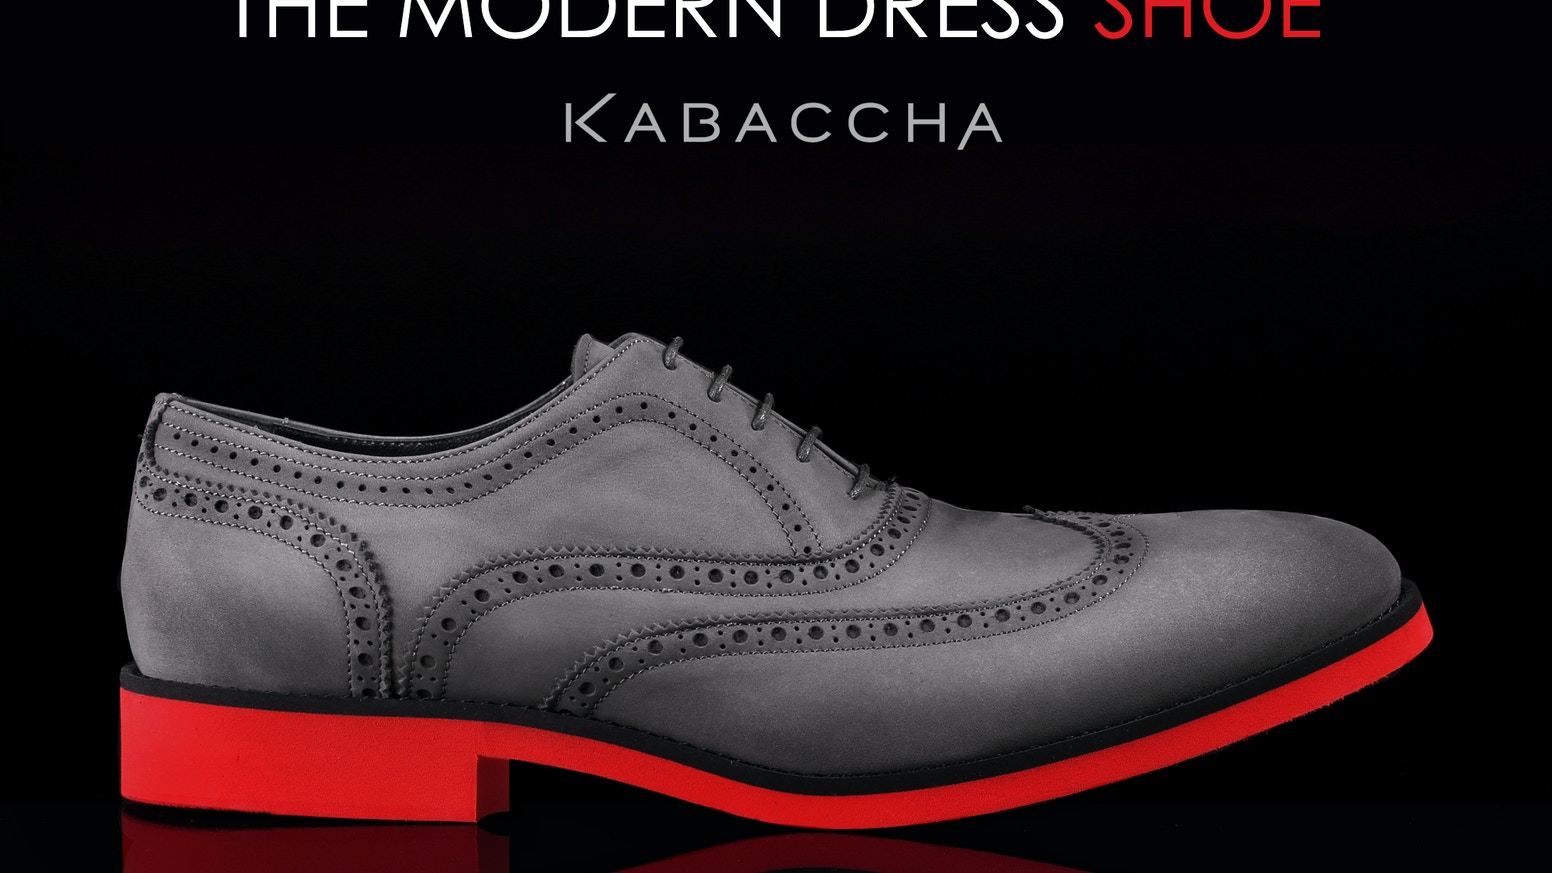 cd0fddc8d5e81 Redefining the Modern Dress Shoe by Kabaccha Shoes — Kickstarter